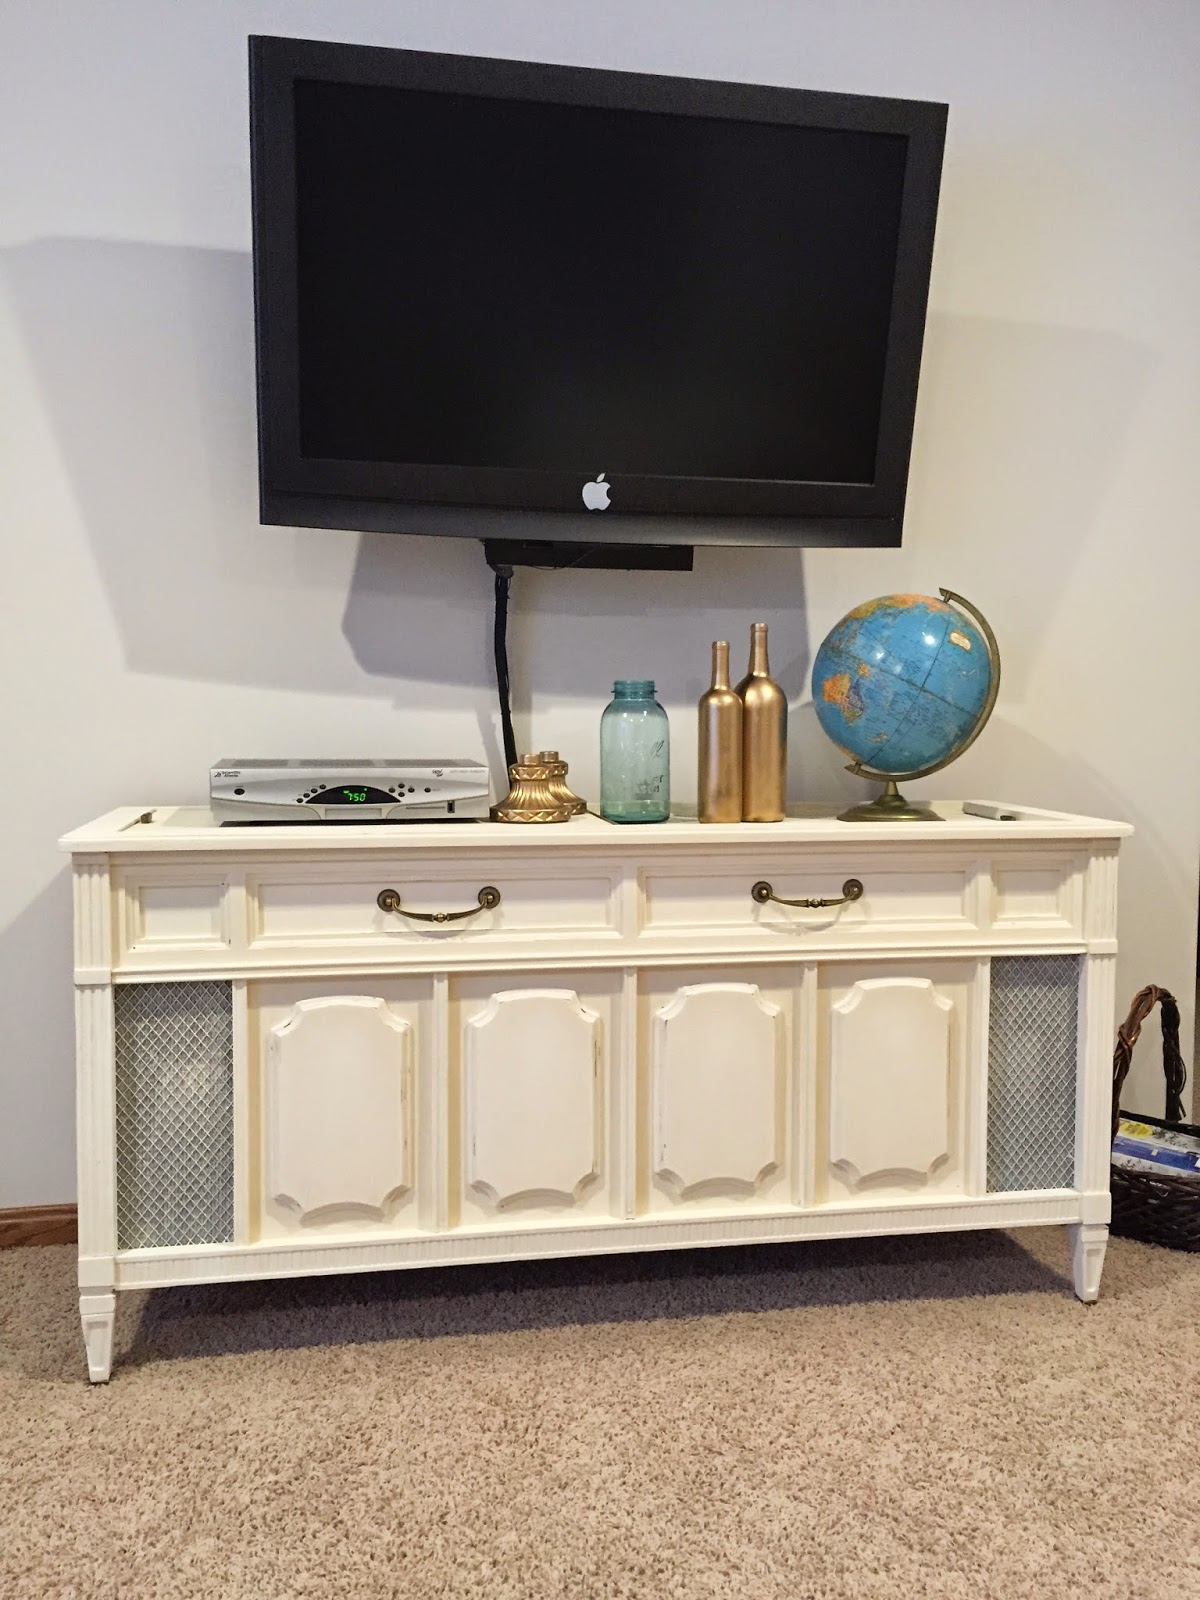 How not to DIY: Record player media console